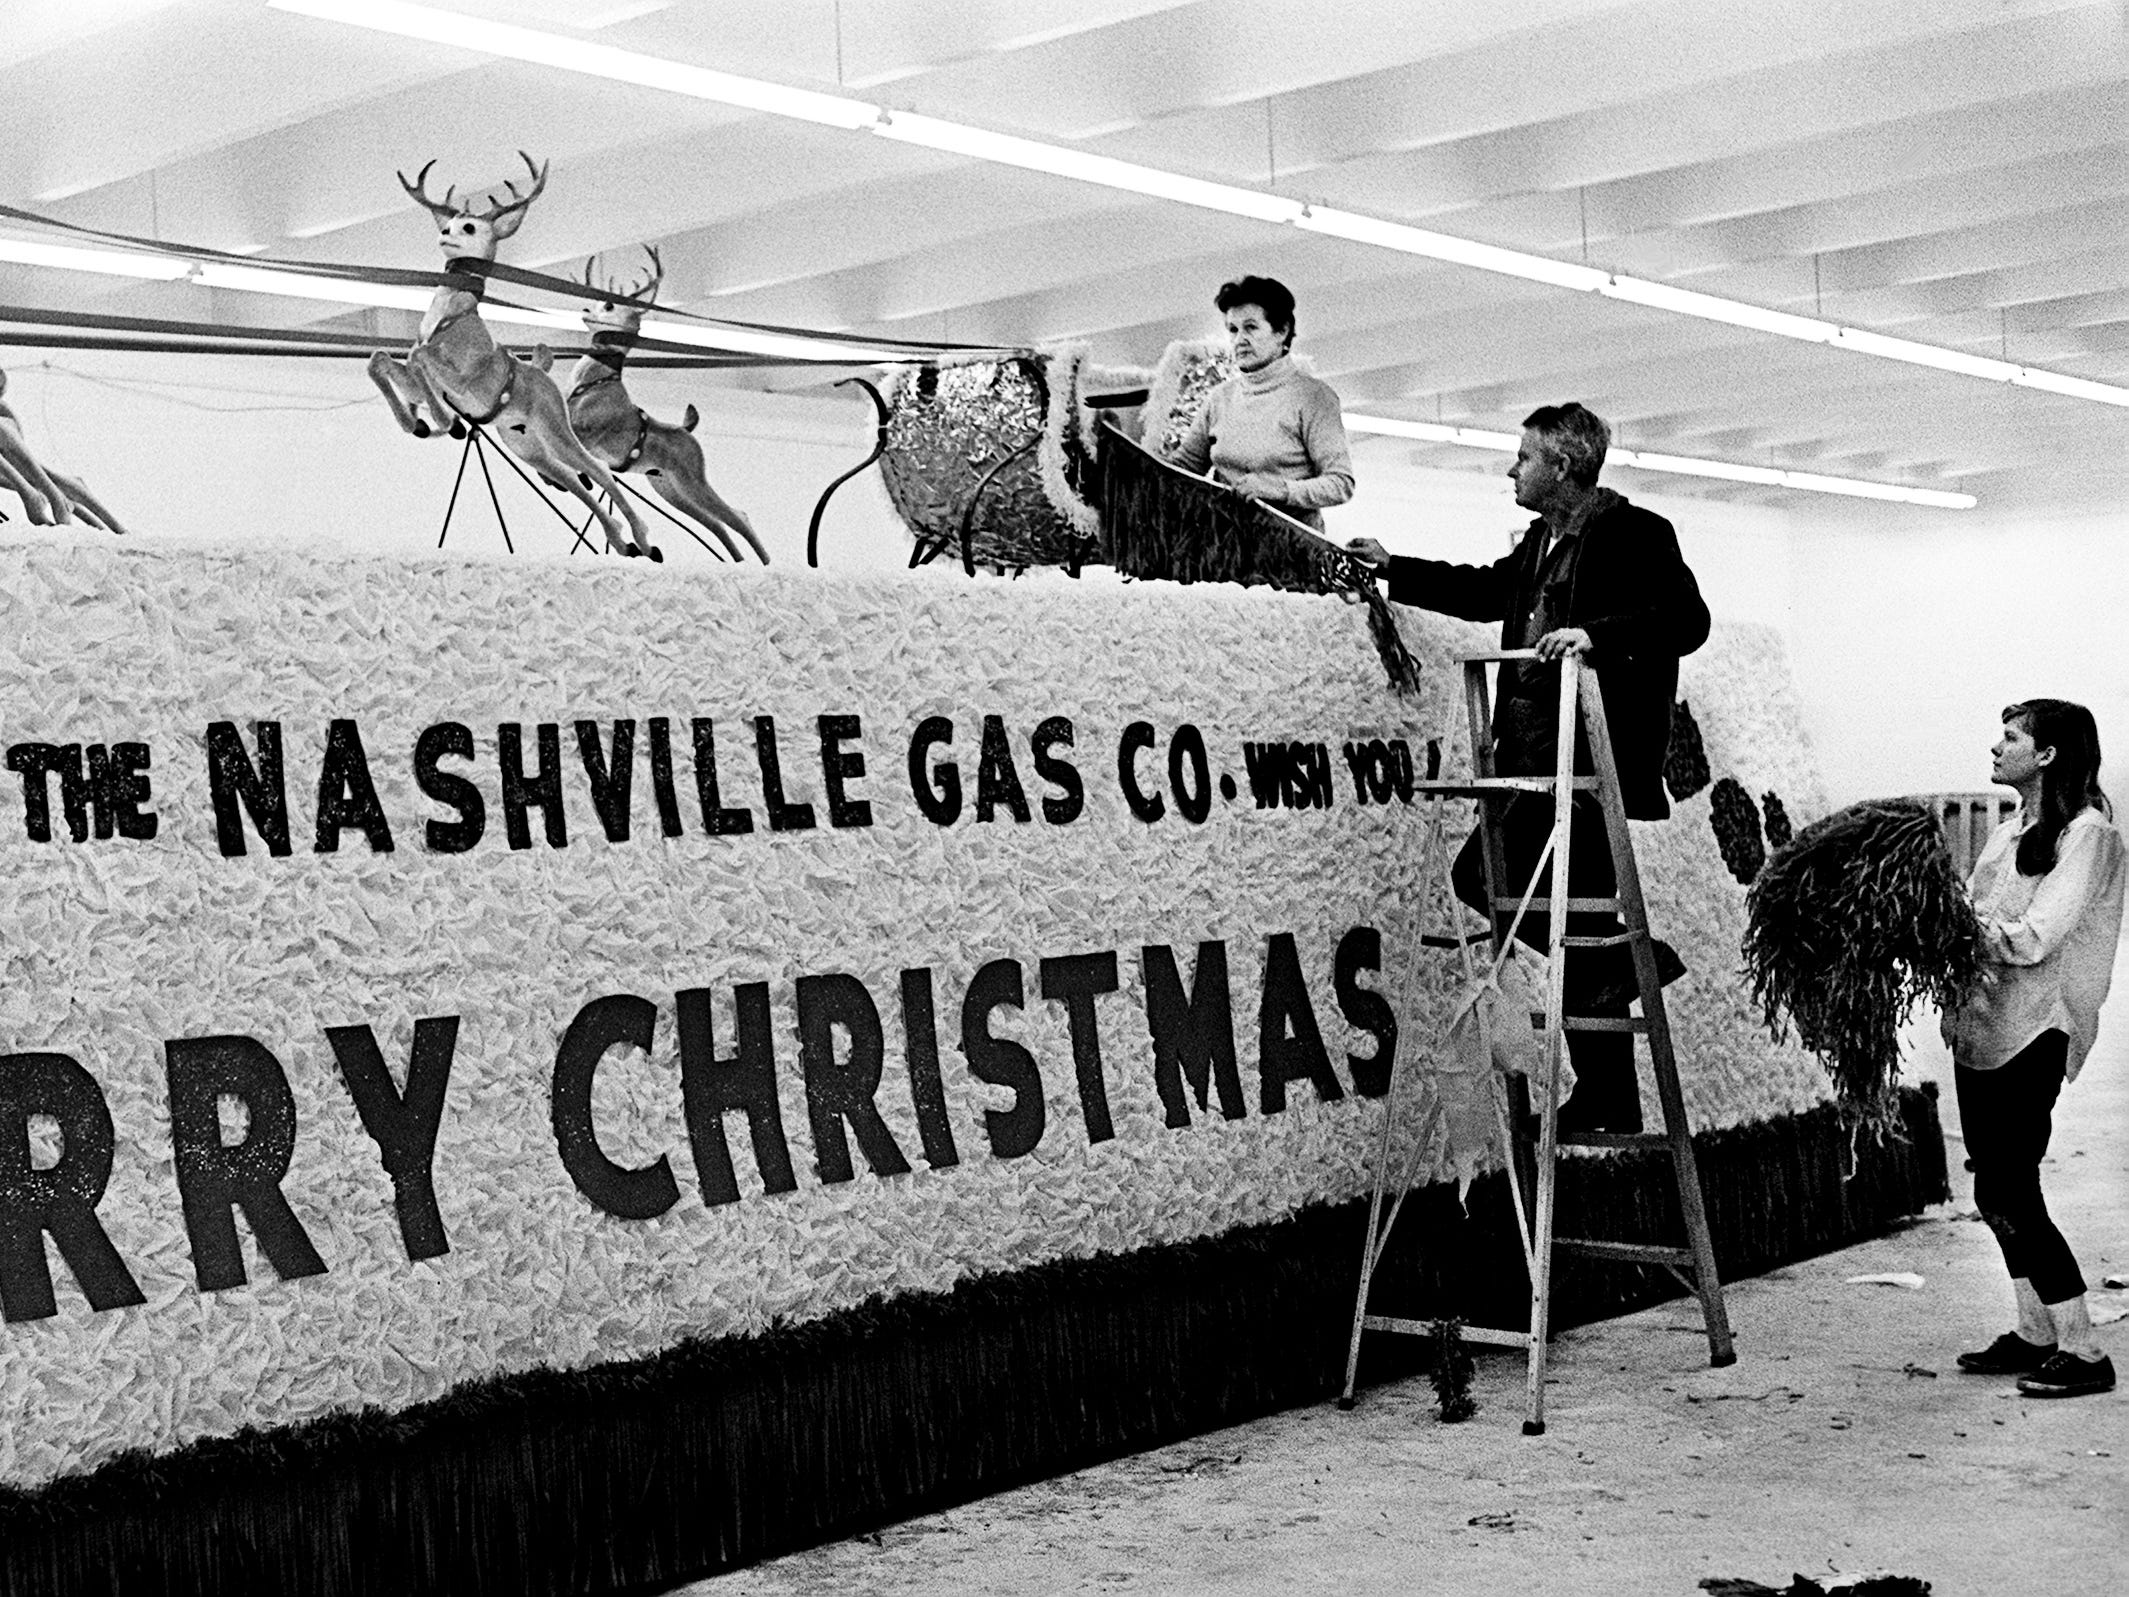 Santa Claus will ride atop this float when the Nashville Area Chamber of Commerce and the Nashville Gas Co. co-sponsor the 16th edition of the Nashville Christmas parade. On the ladder at the Fairgrounds Dec. 5, 1968 is Paul Stalls of Clarksville, a professional parade decorator. His assistants are Martha Utermarck, left, and Mary Ann Kennon, both of Clarksville.